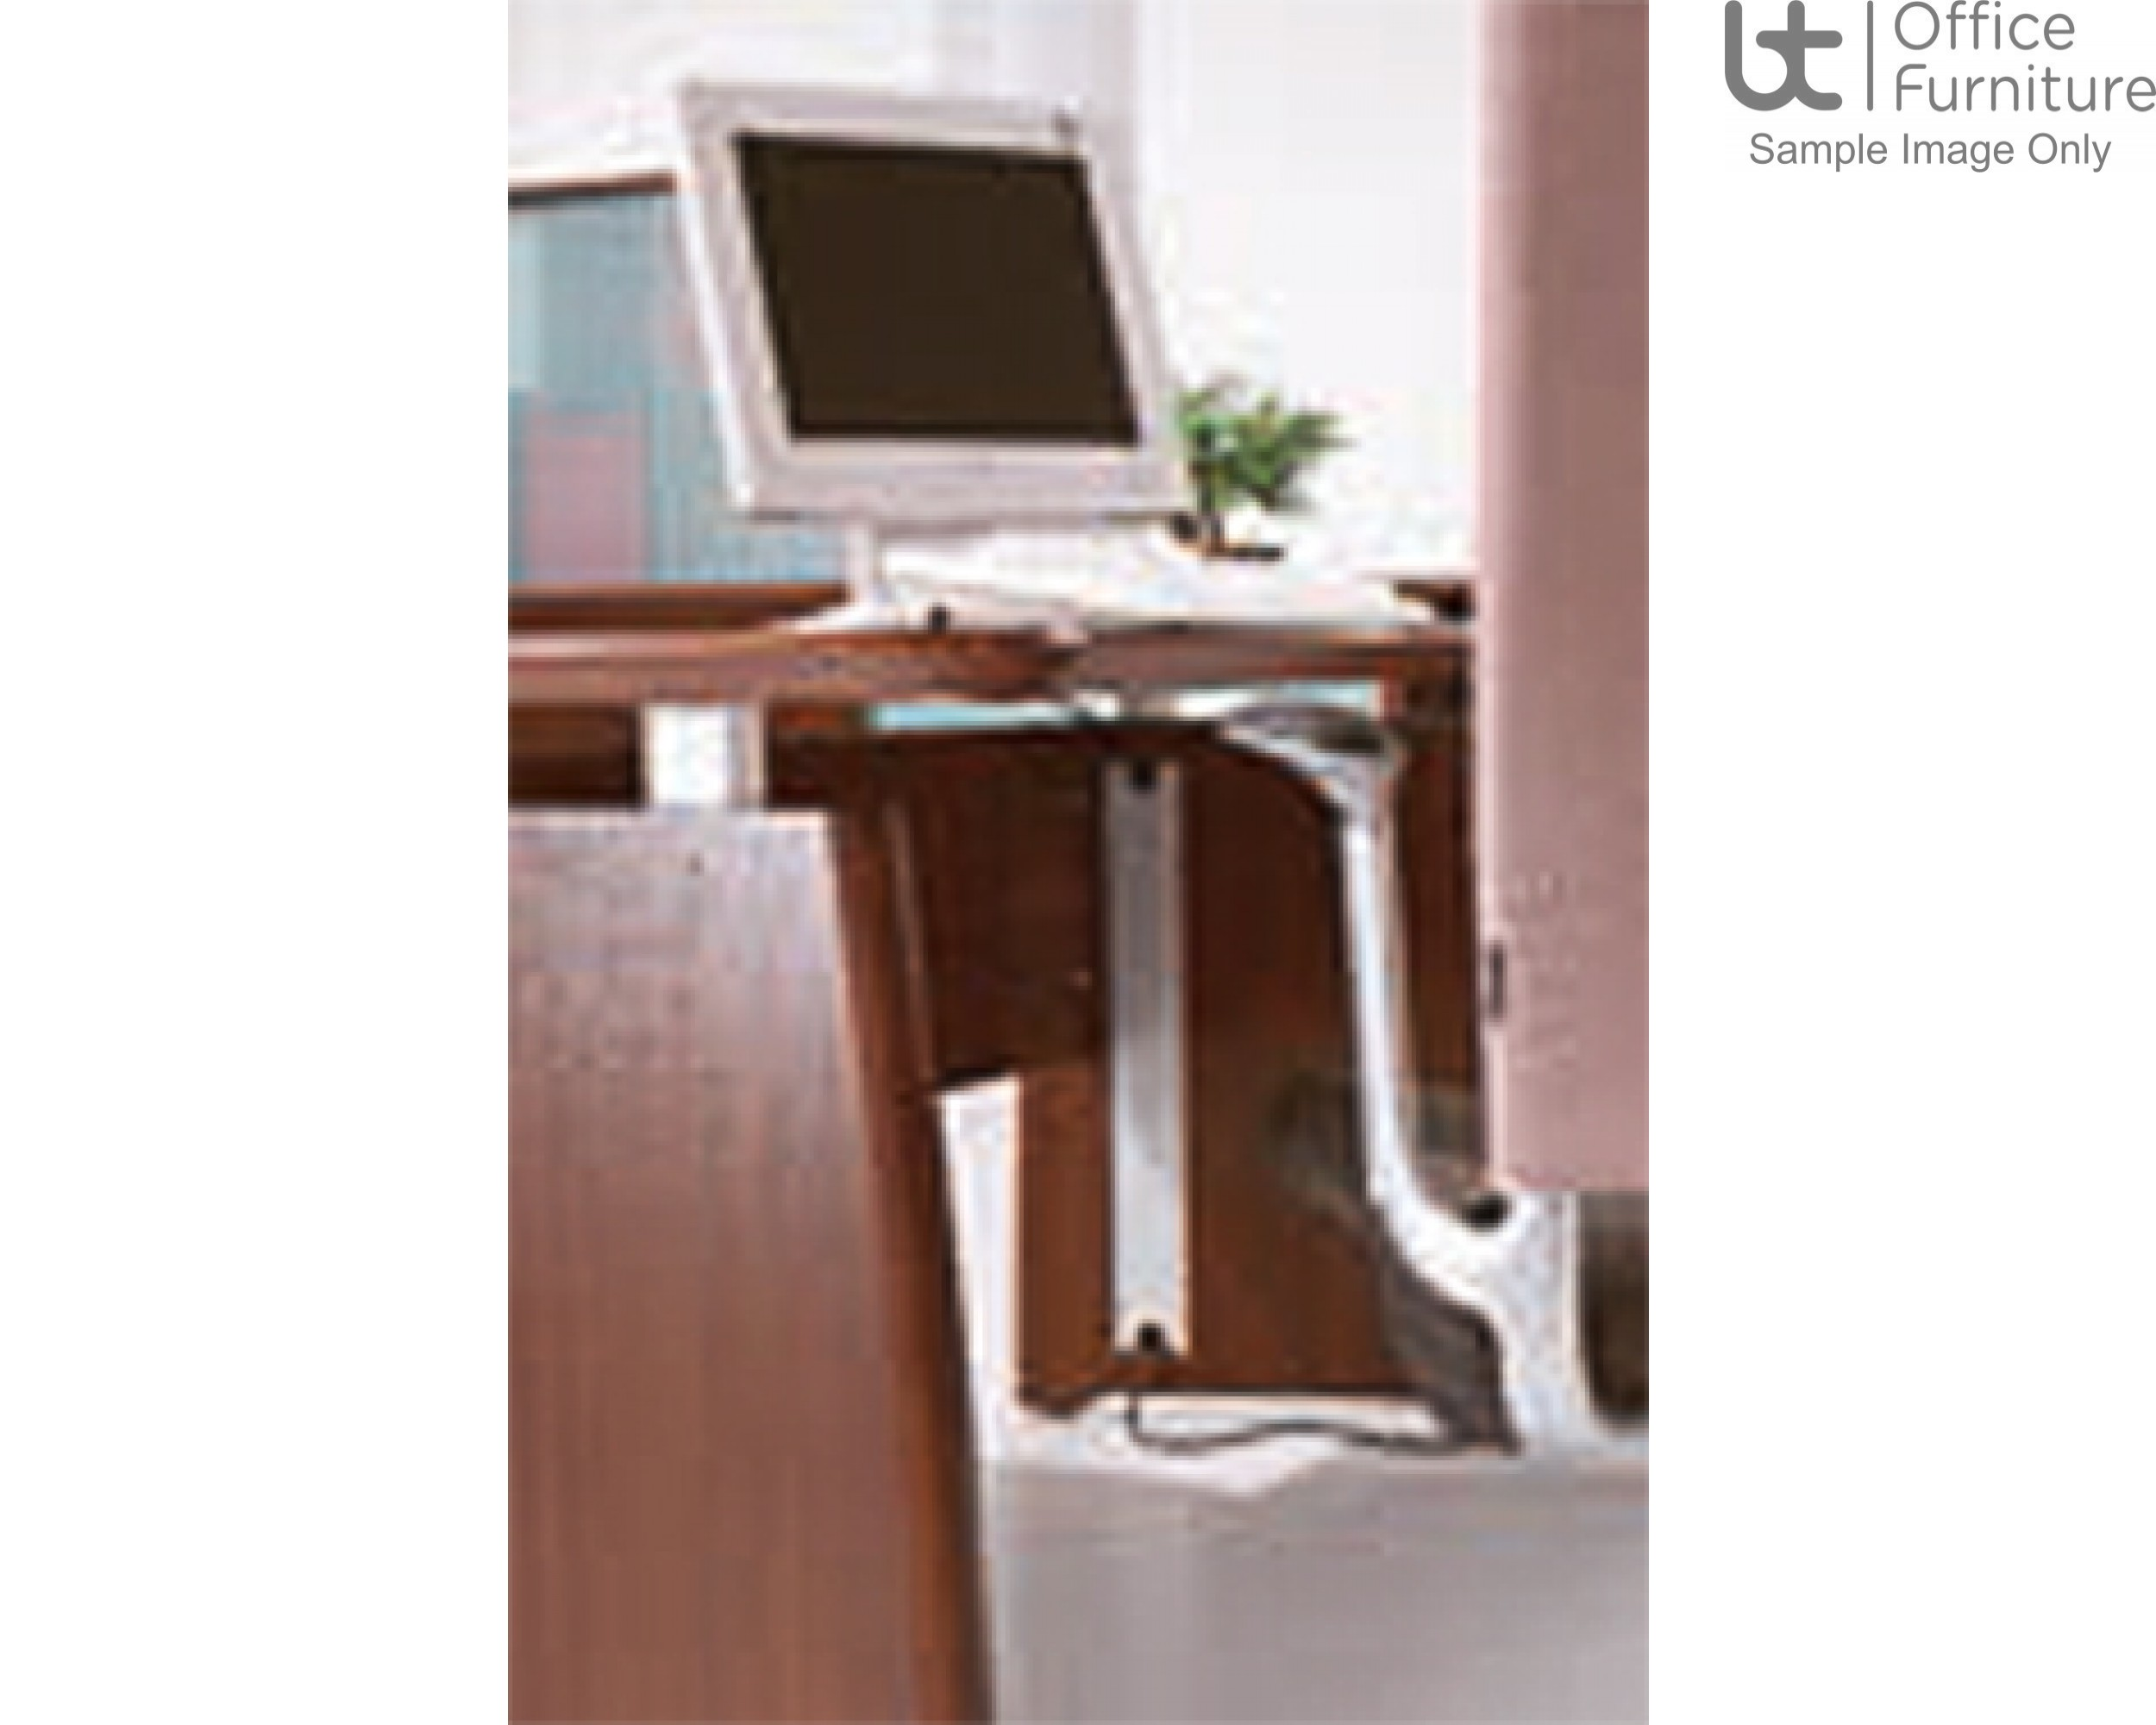 Verco Intuition Horizontal Wipe In Channel